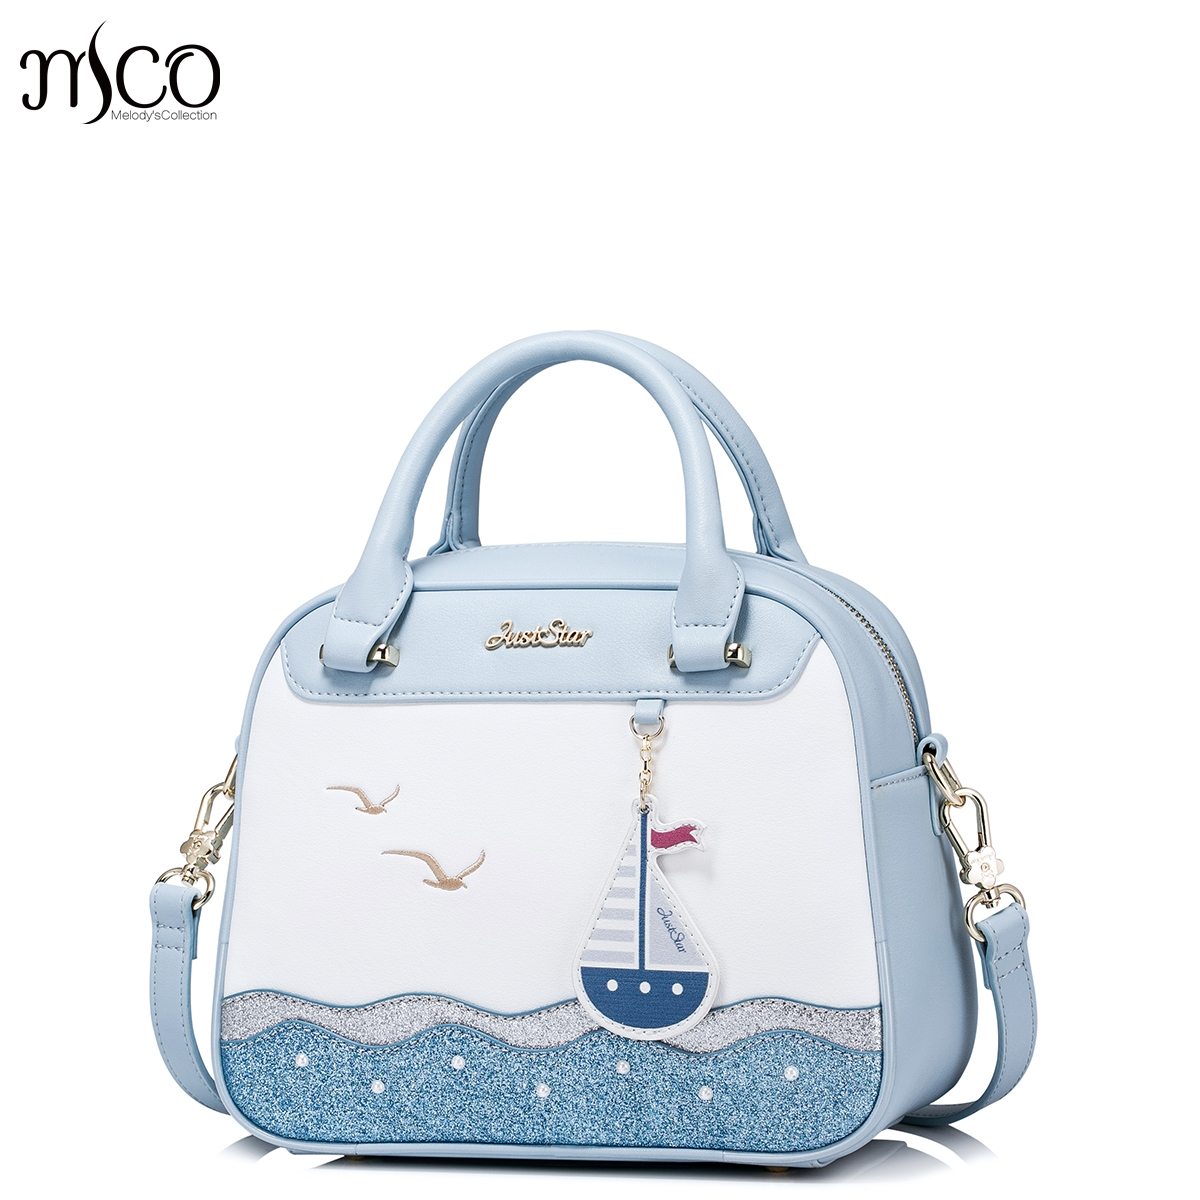 Brand Design Handbag Women tote bag female boston small shoulder messenger bags Sail Embroidery Purse Leisure Sea Messenger Bags 2017 fashion women bag fun flamingo design embroidery handbag for girl hit square bag leisure female shoulder messenger party